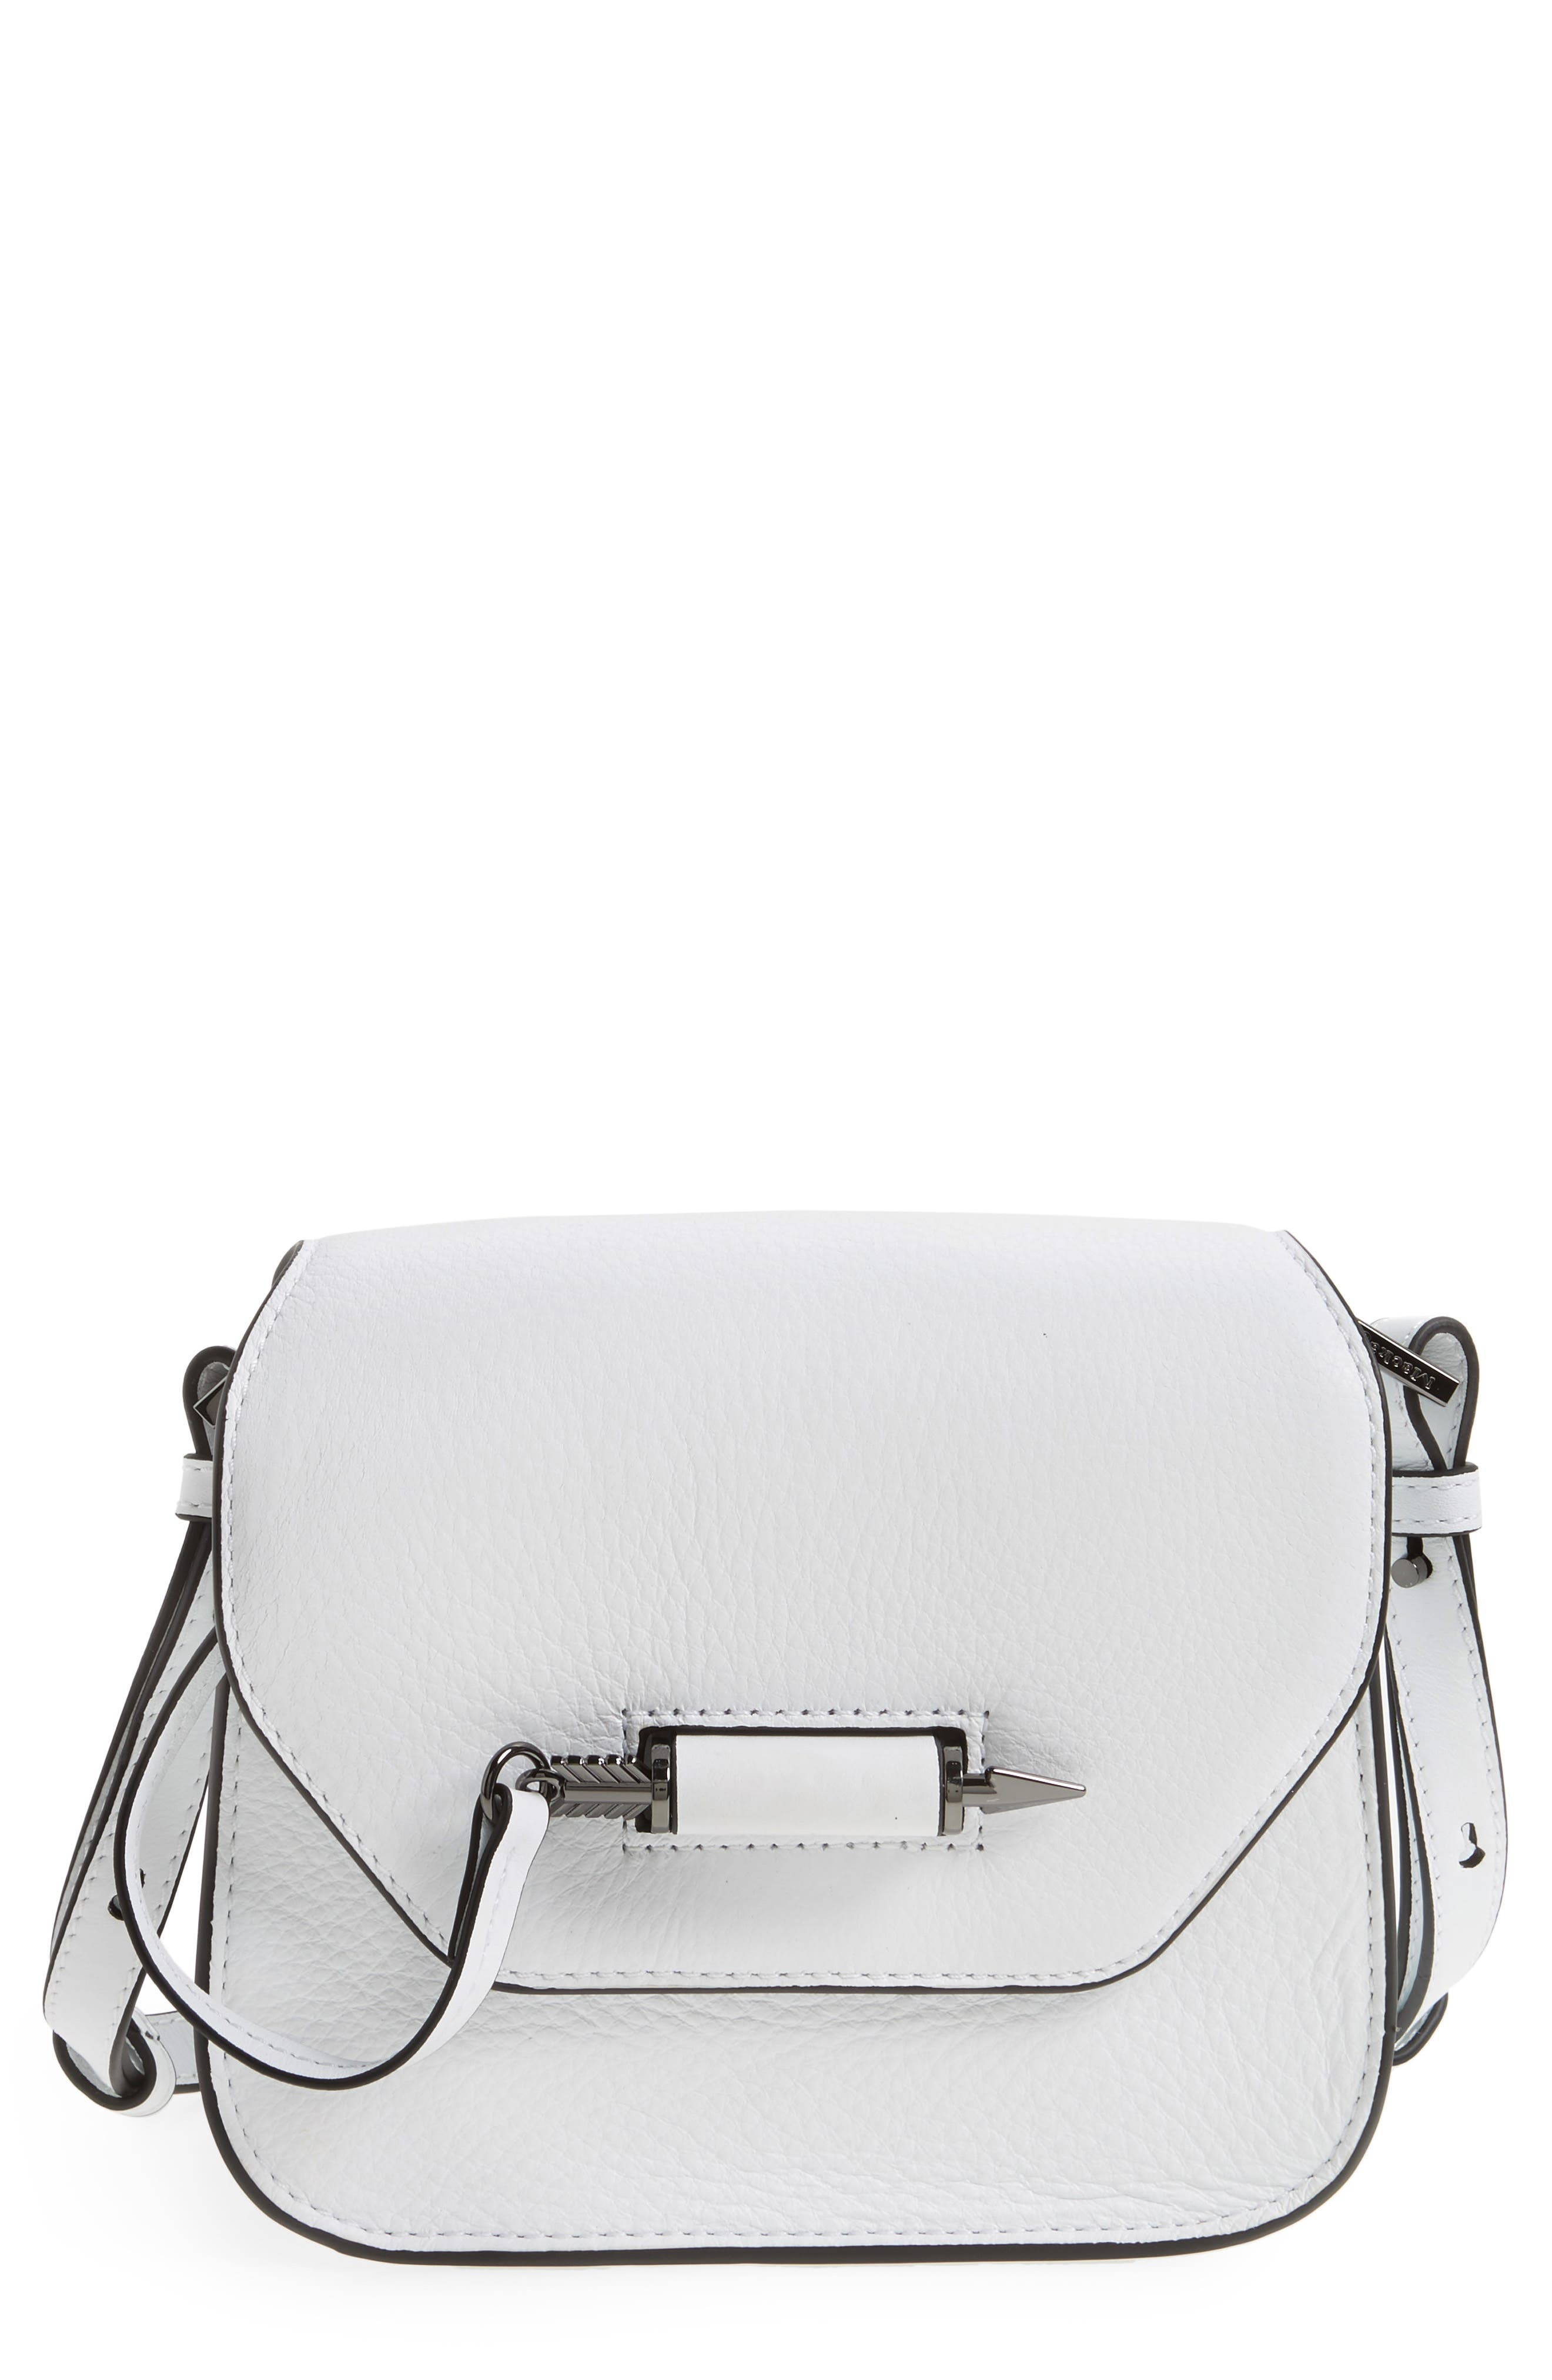 Alternate Image 1 Selected - Mackage Mini Novacki Leather Crossbody Bag